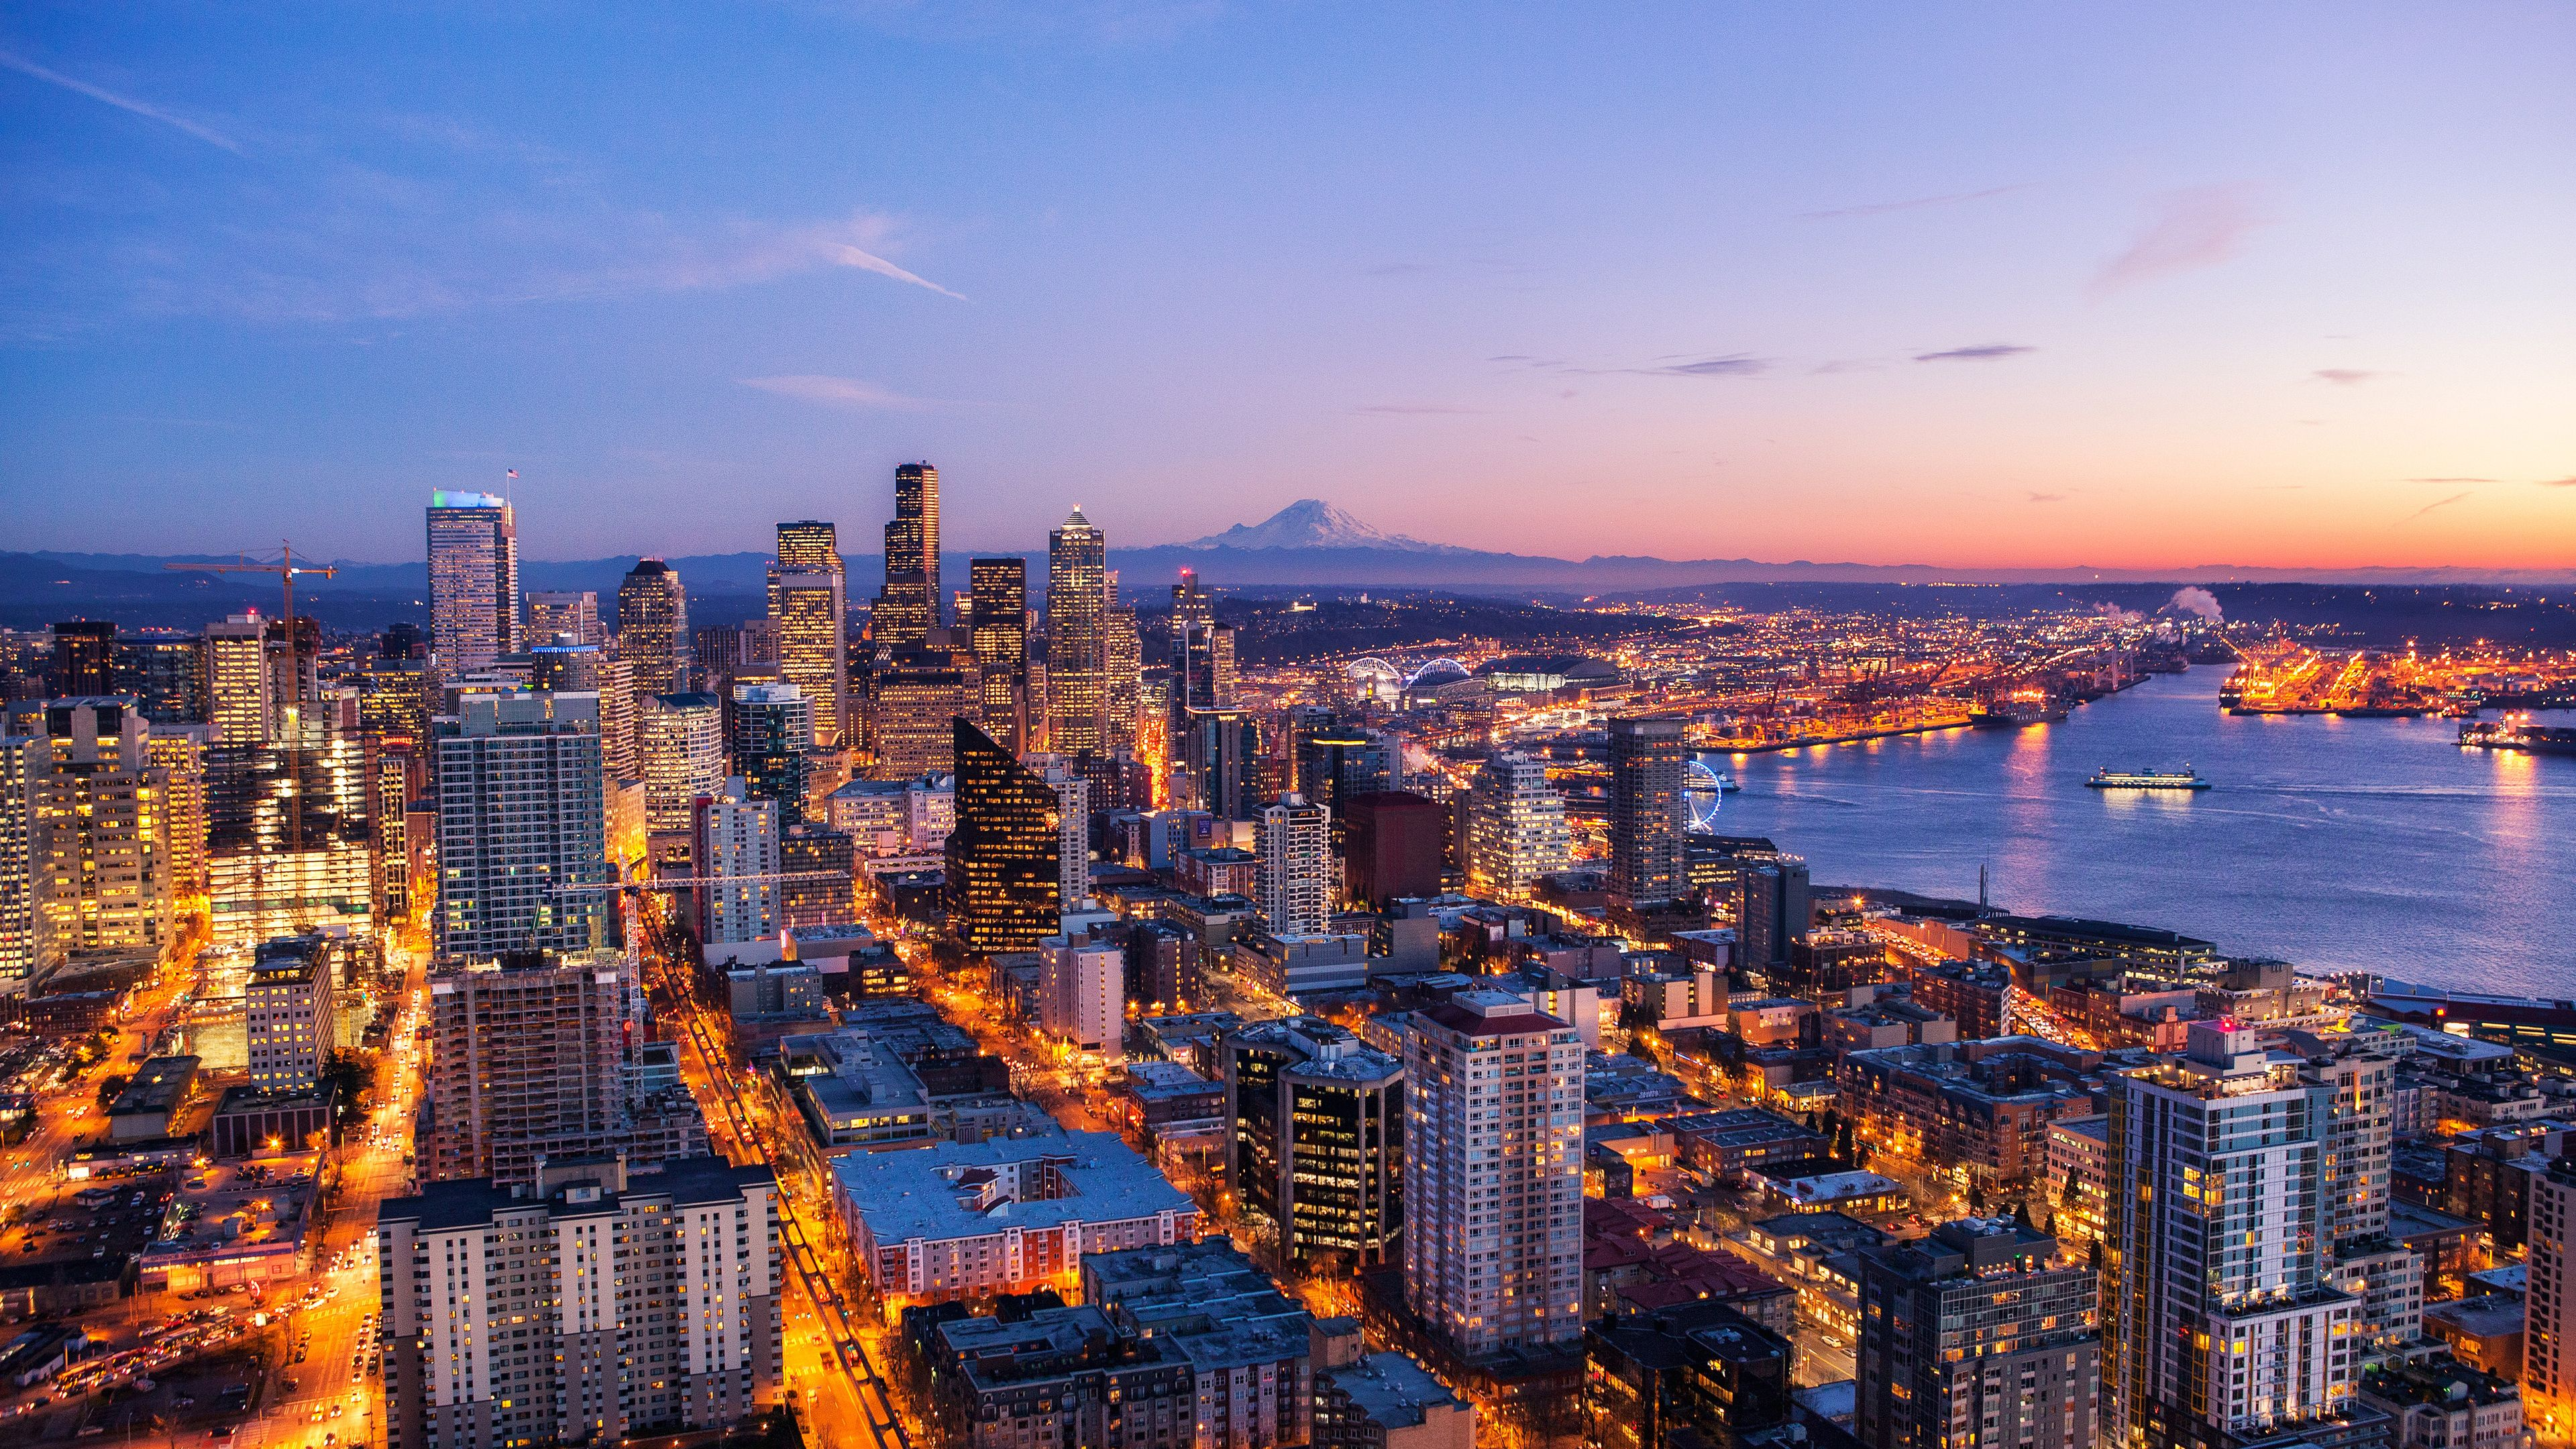 Wallpaper 4k Seattle Skyline At Night View 4k 4k